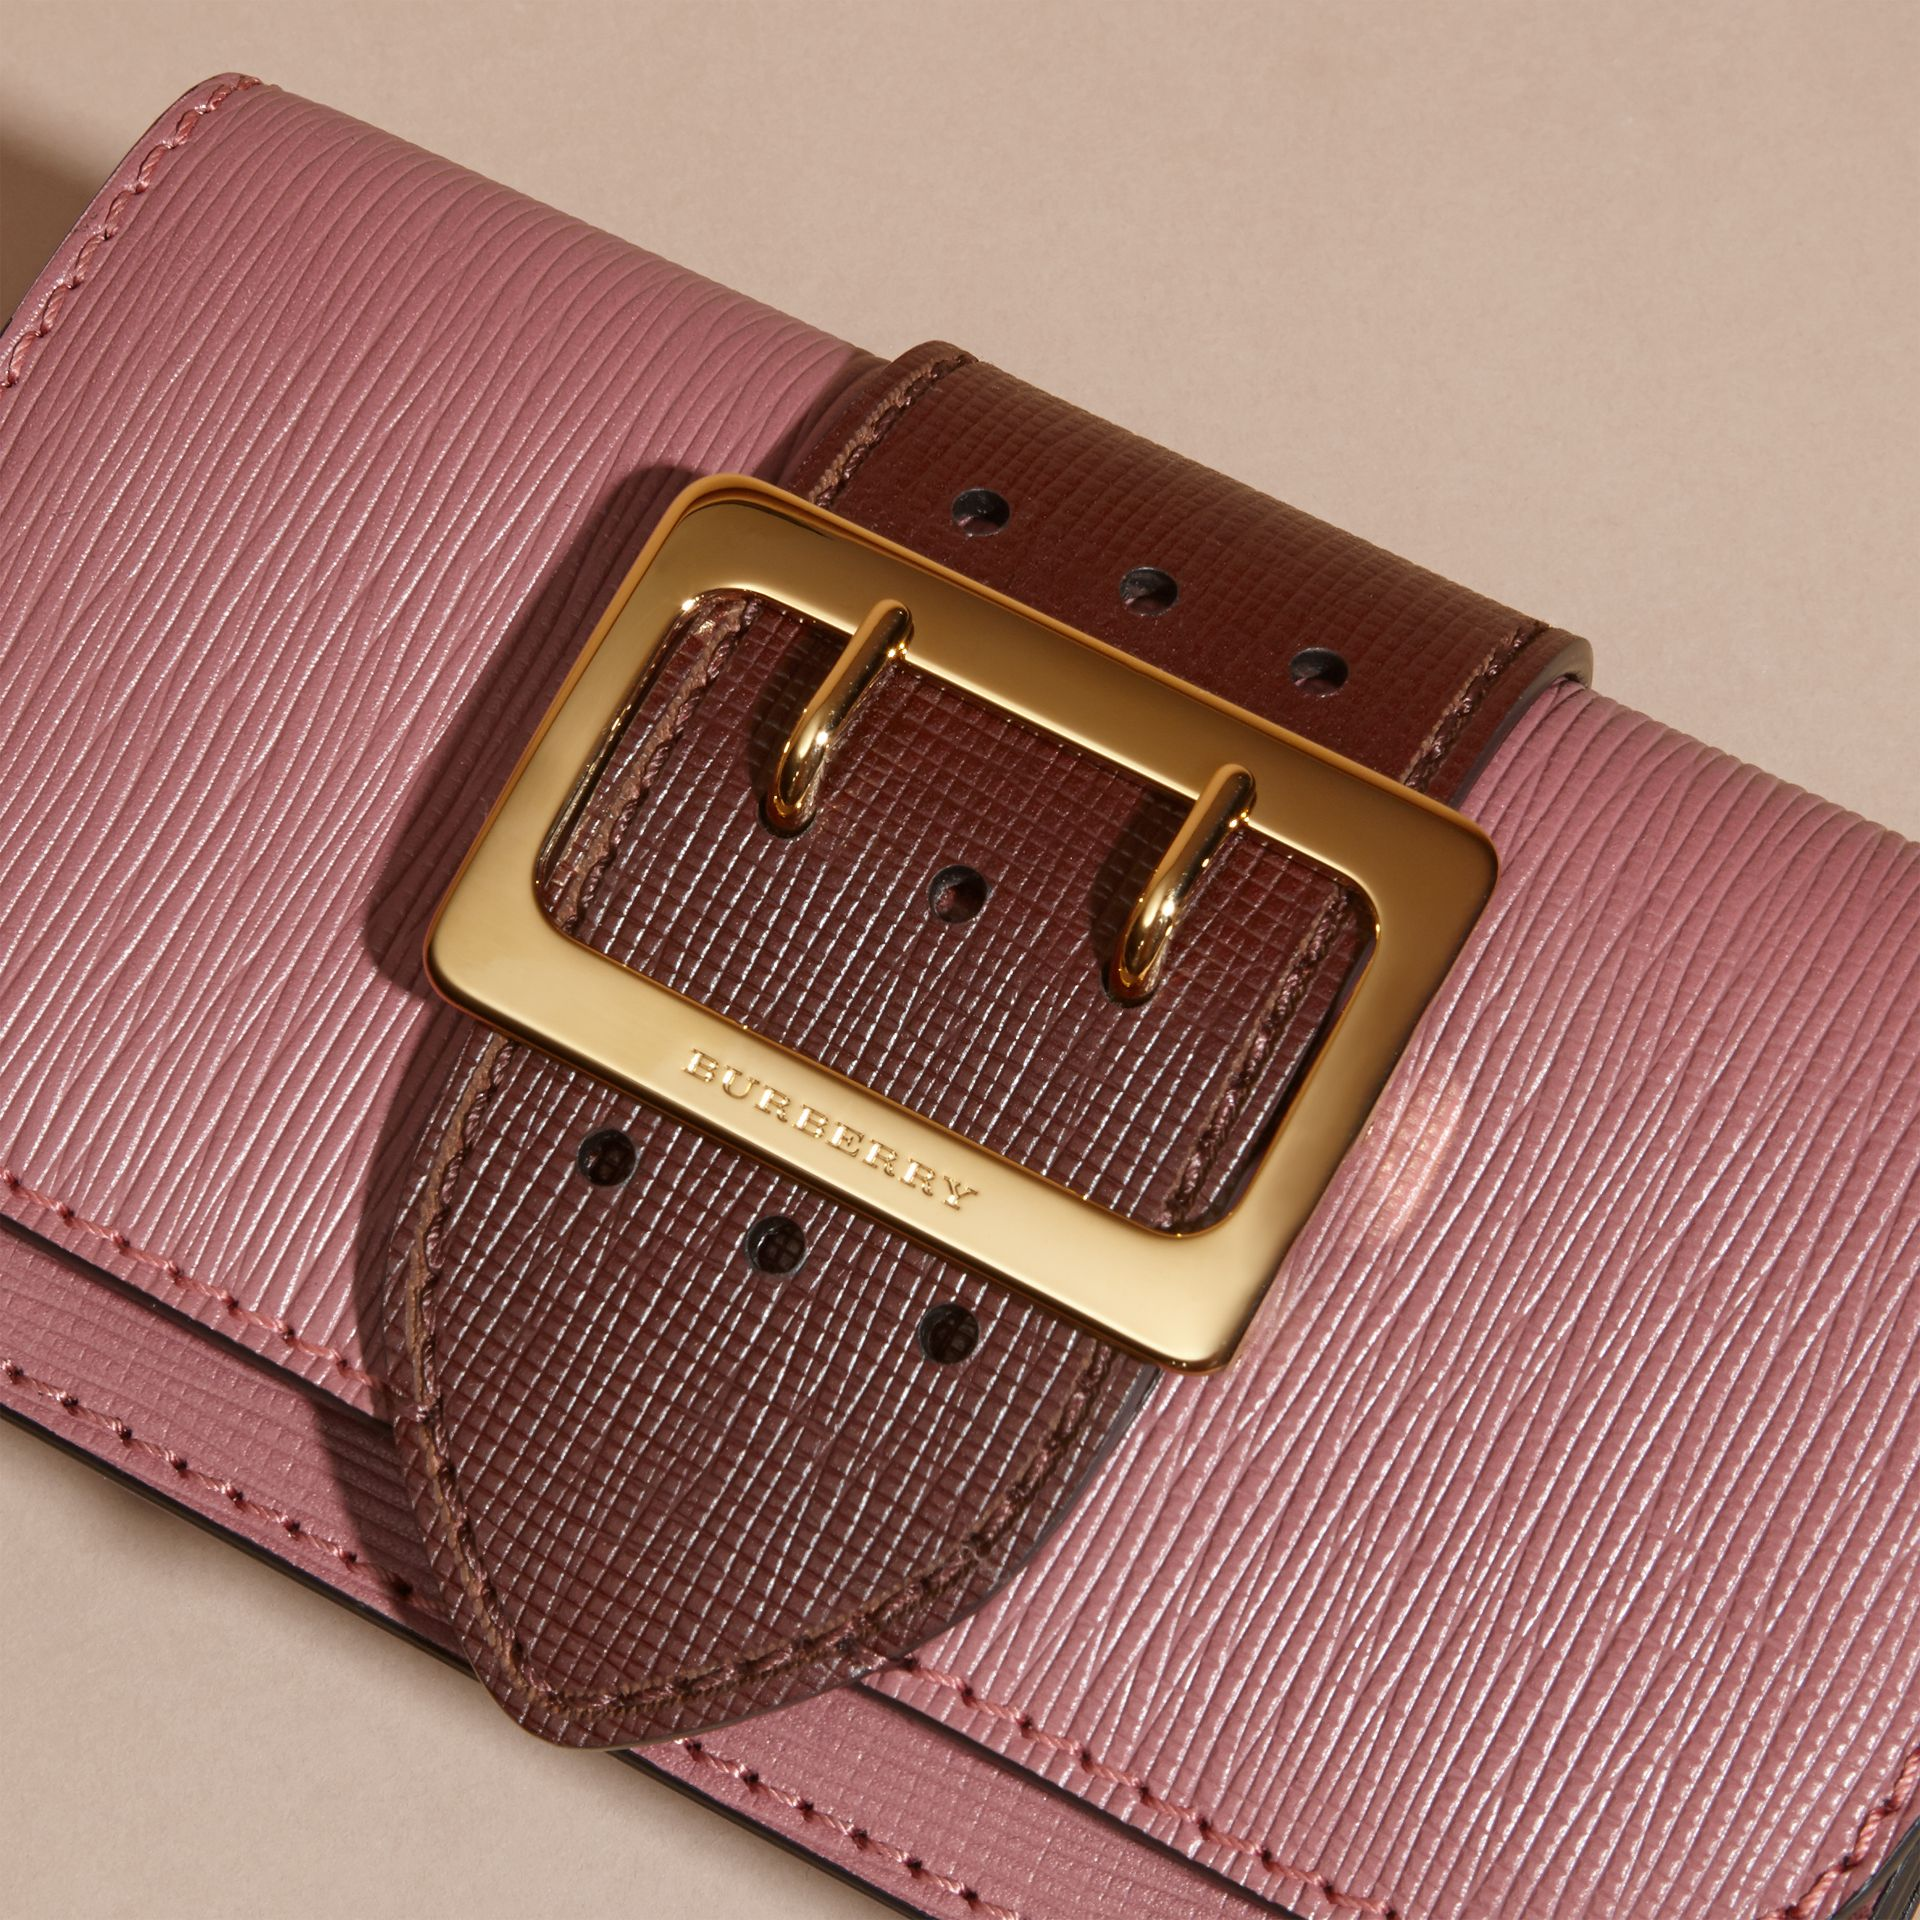 Dusky pink/ burgundy The Small Buckle Bag in Textured Leather Dusky Pink/ Burgundy - gallery image 2